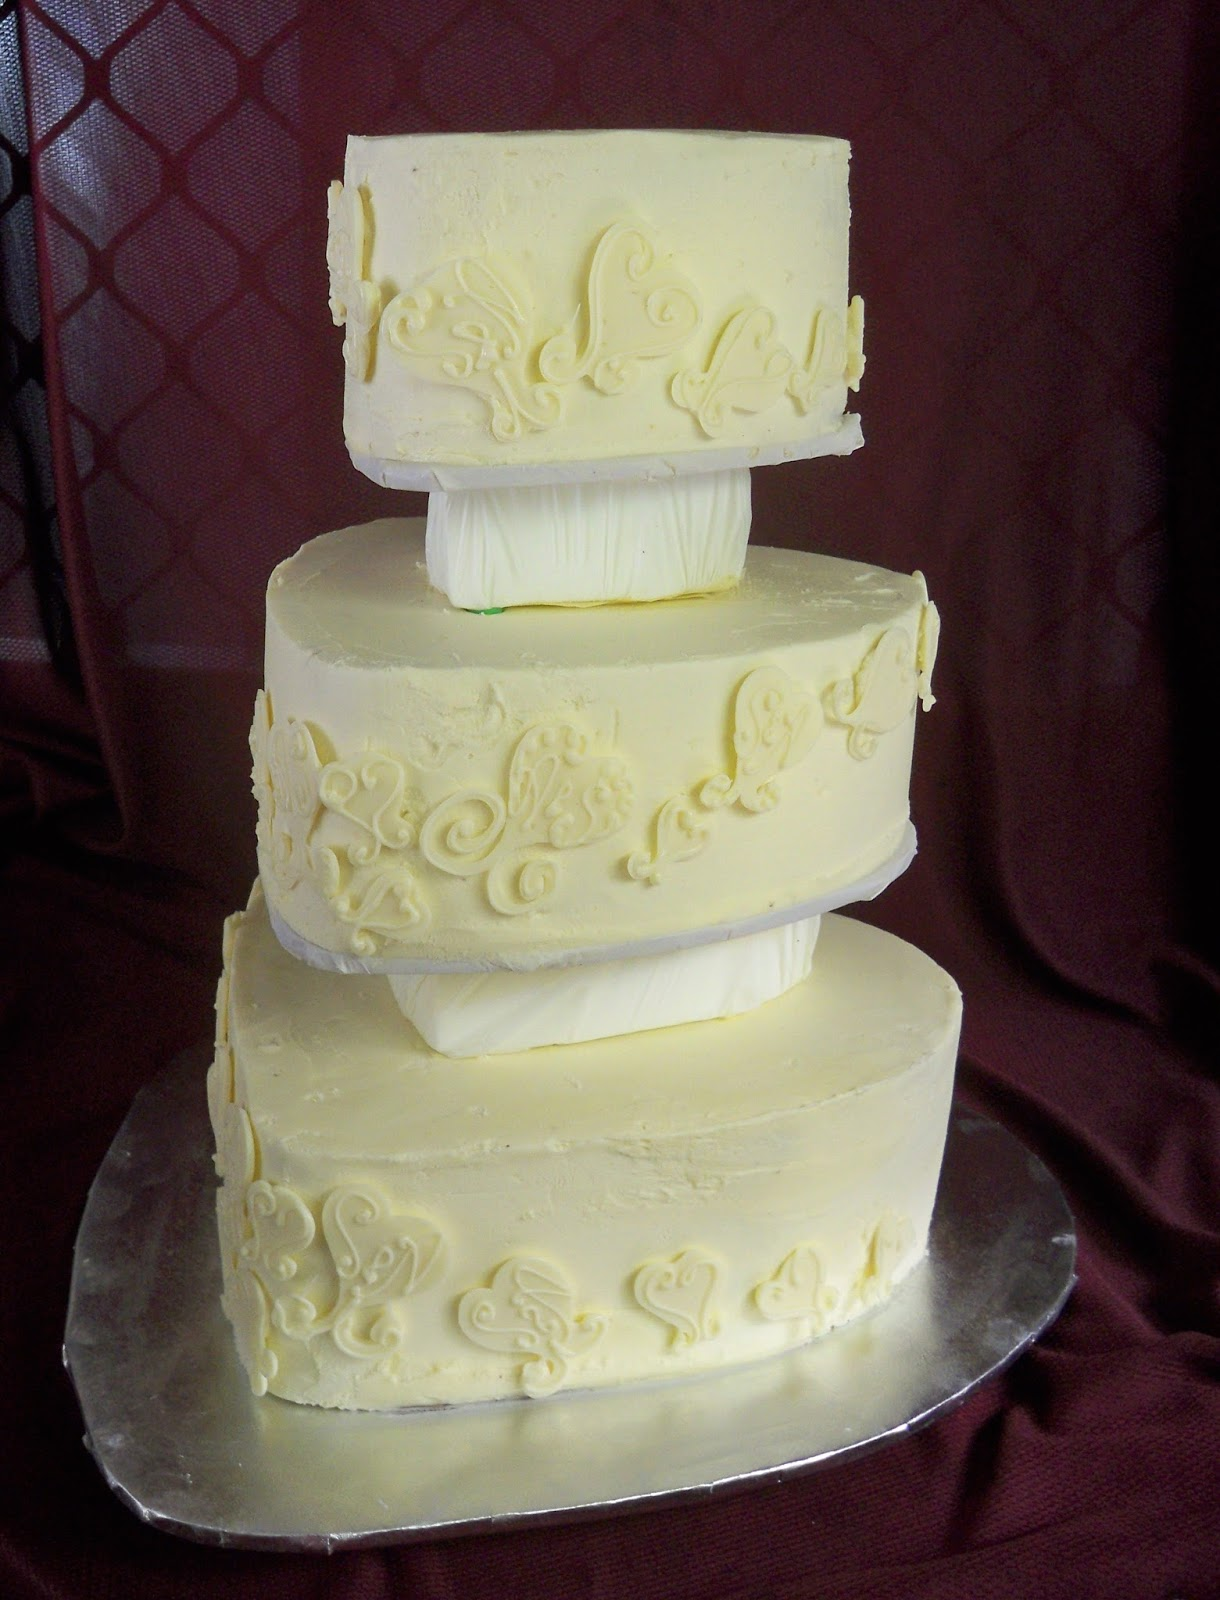 Romantic white chocolate wedding cake | Elisabeth\'s Wedding Cakes